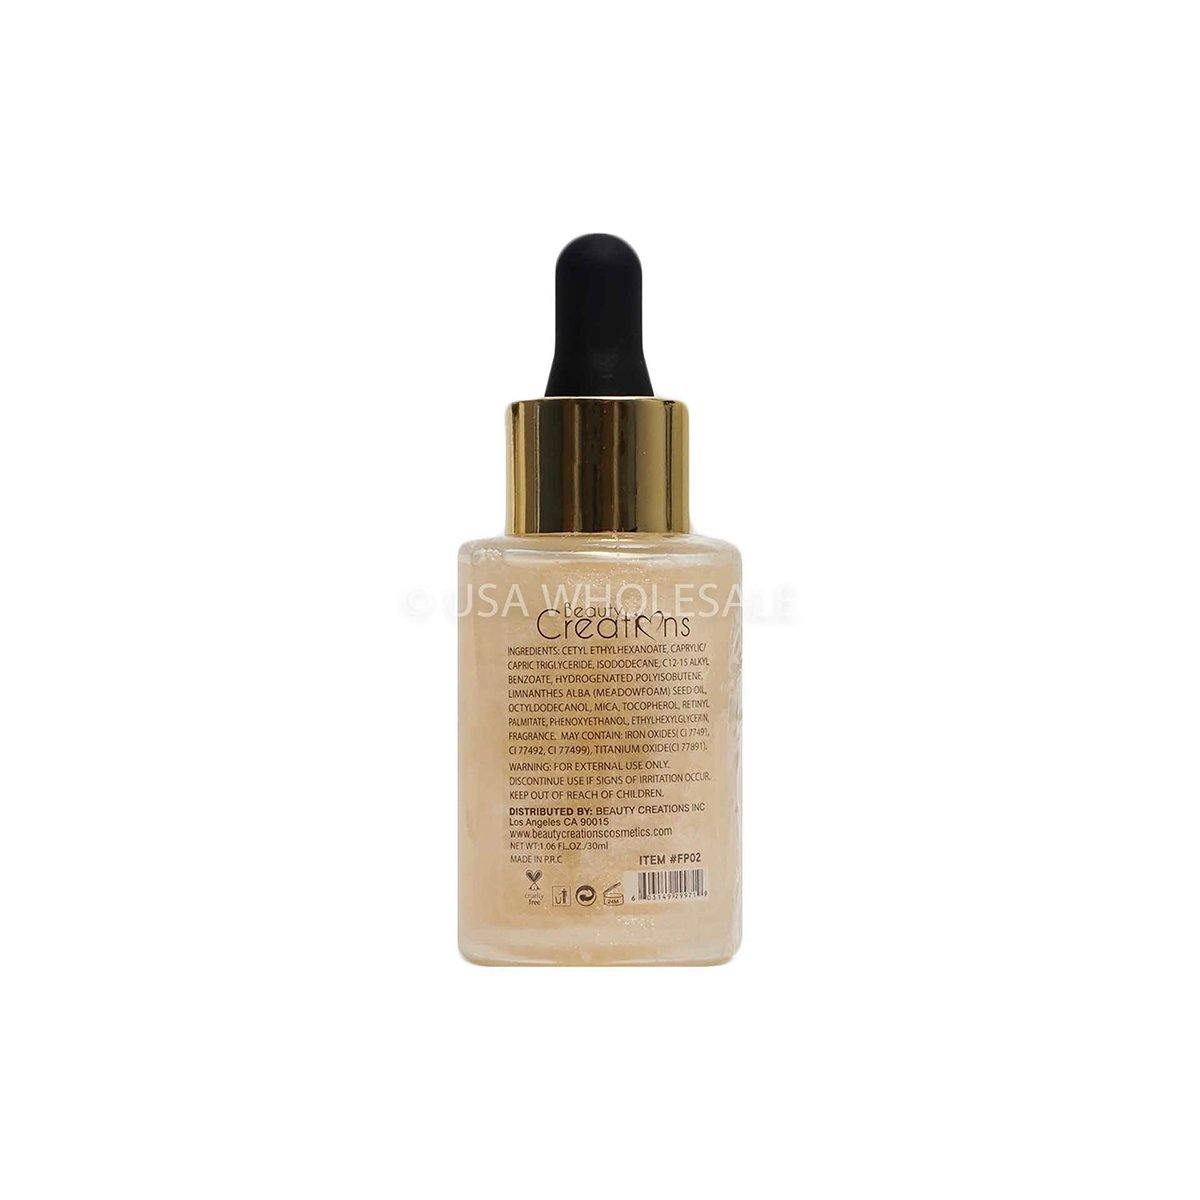 BEAUTY CREATIONS | Glow Primer Oil, Non-greasy (Case of 12)